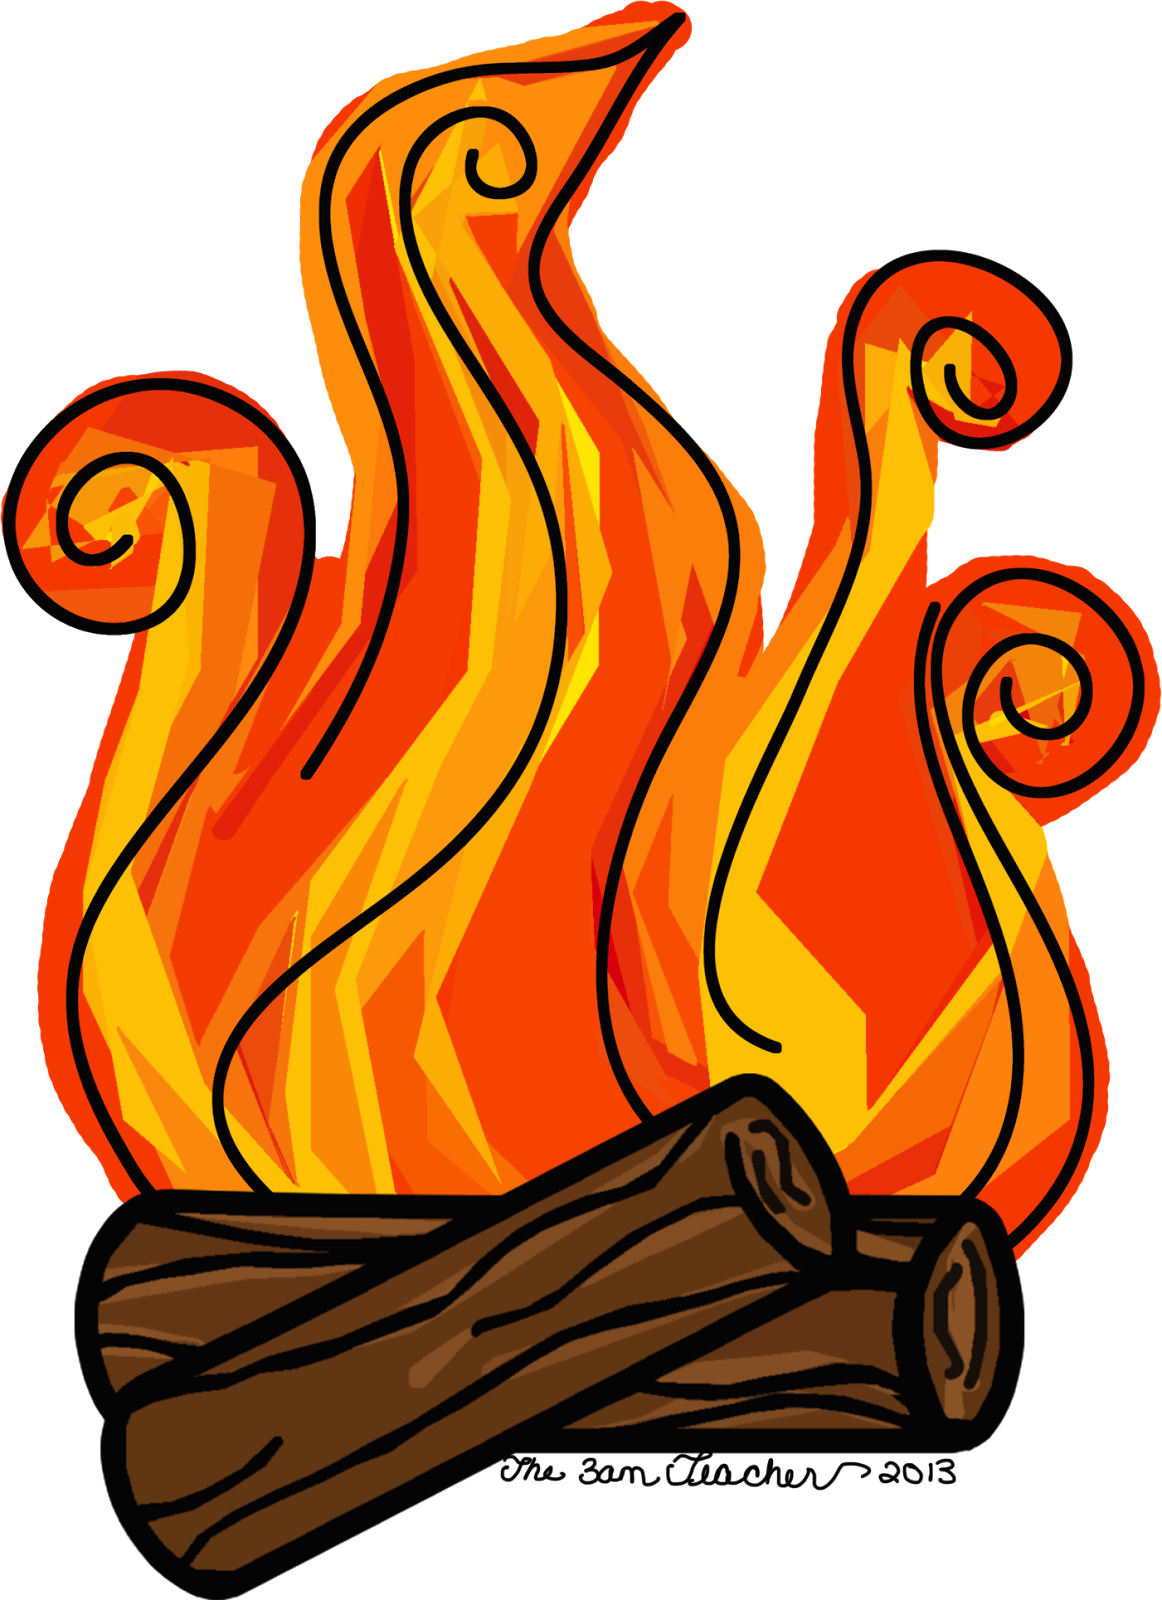 clipart transparent Fireplace clipart. Logs and fire free